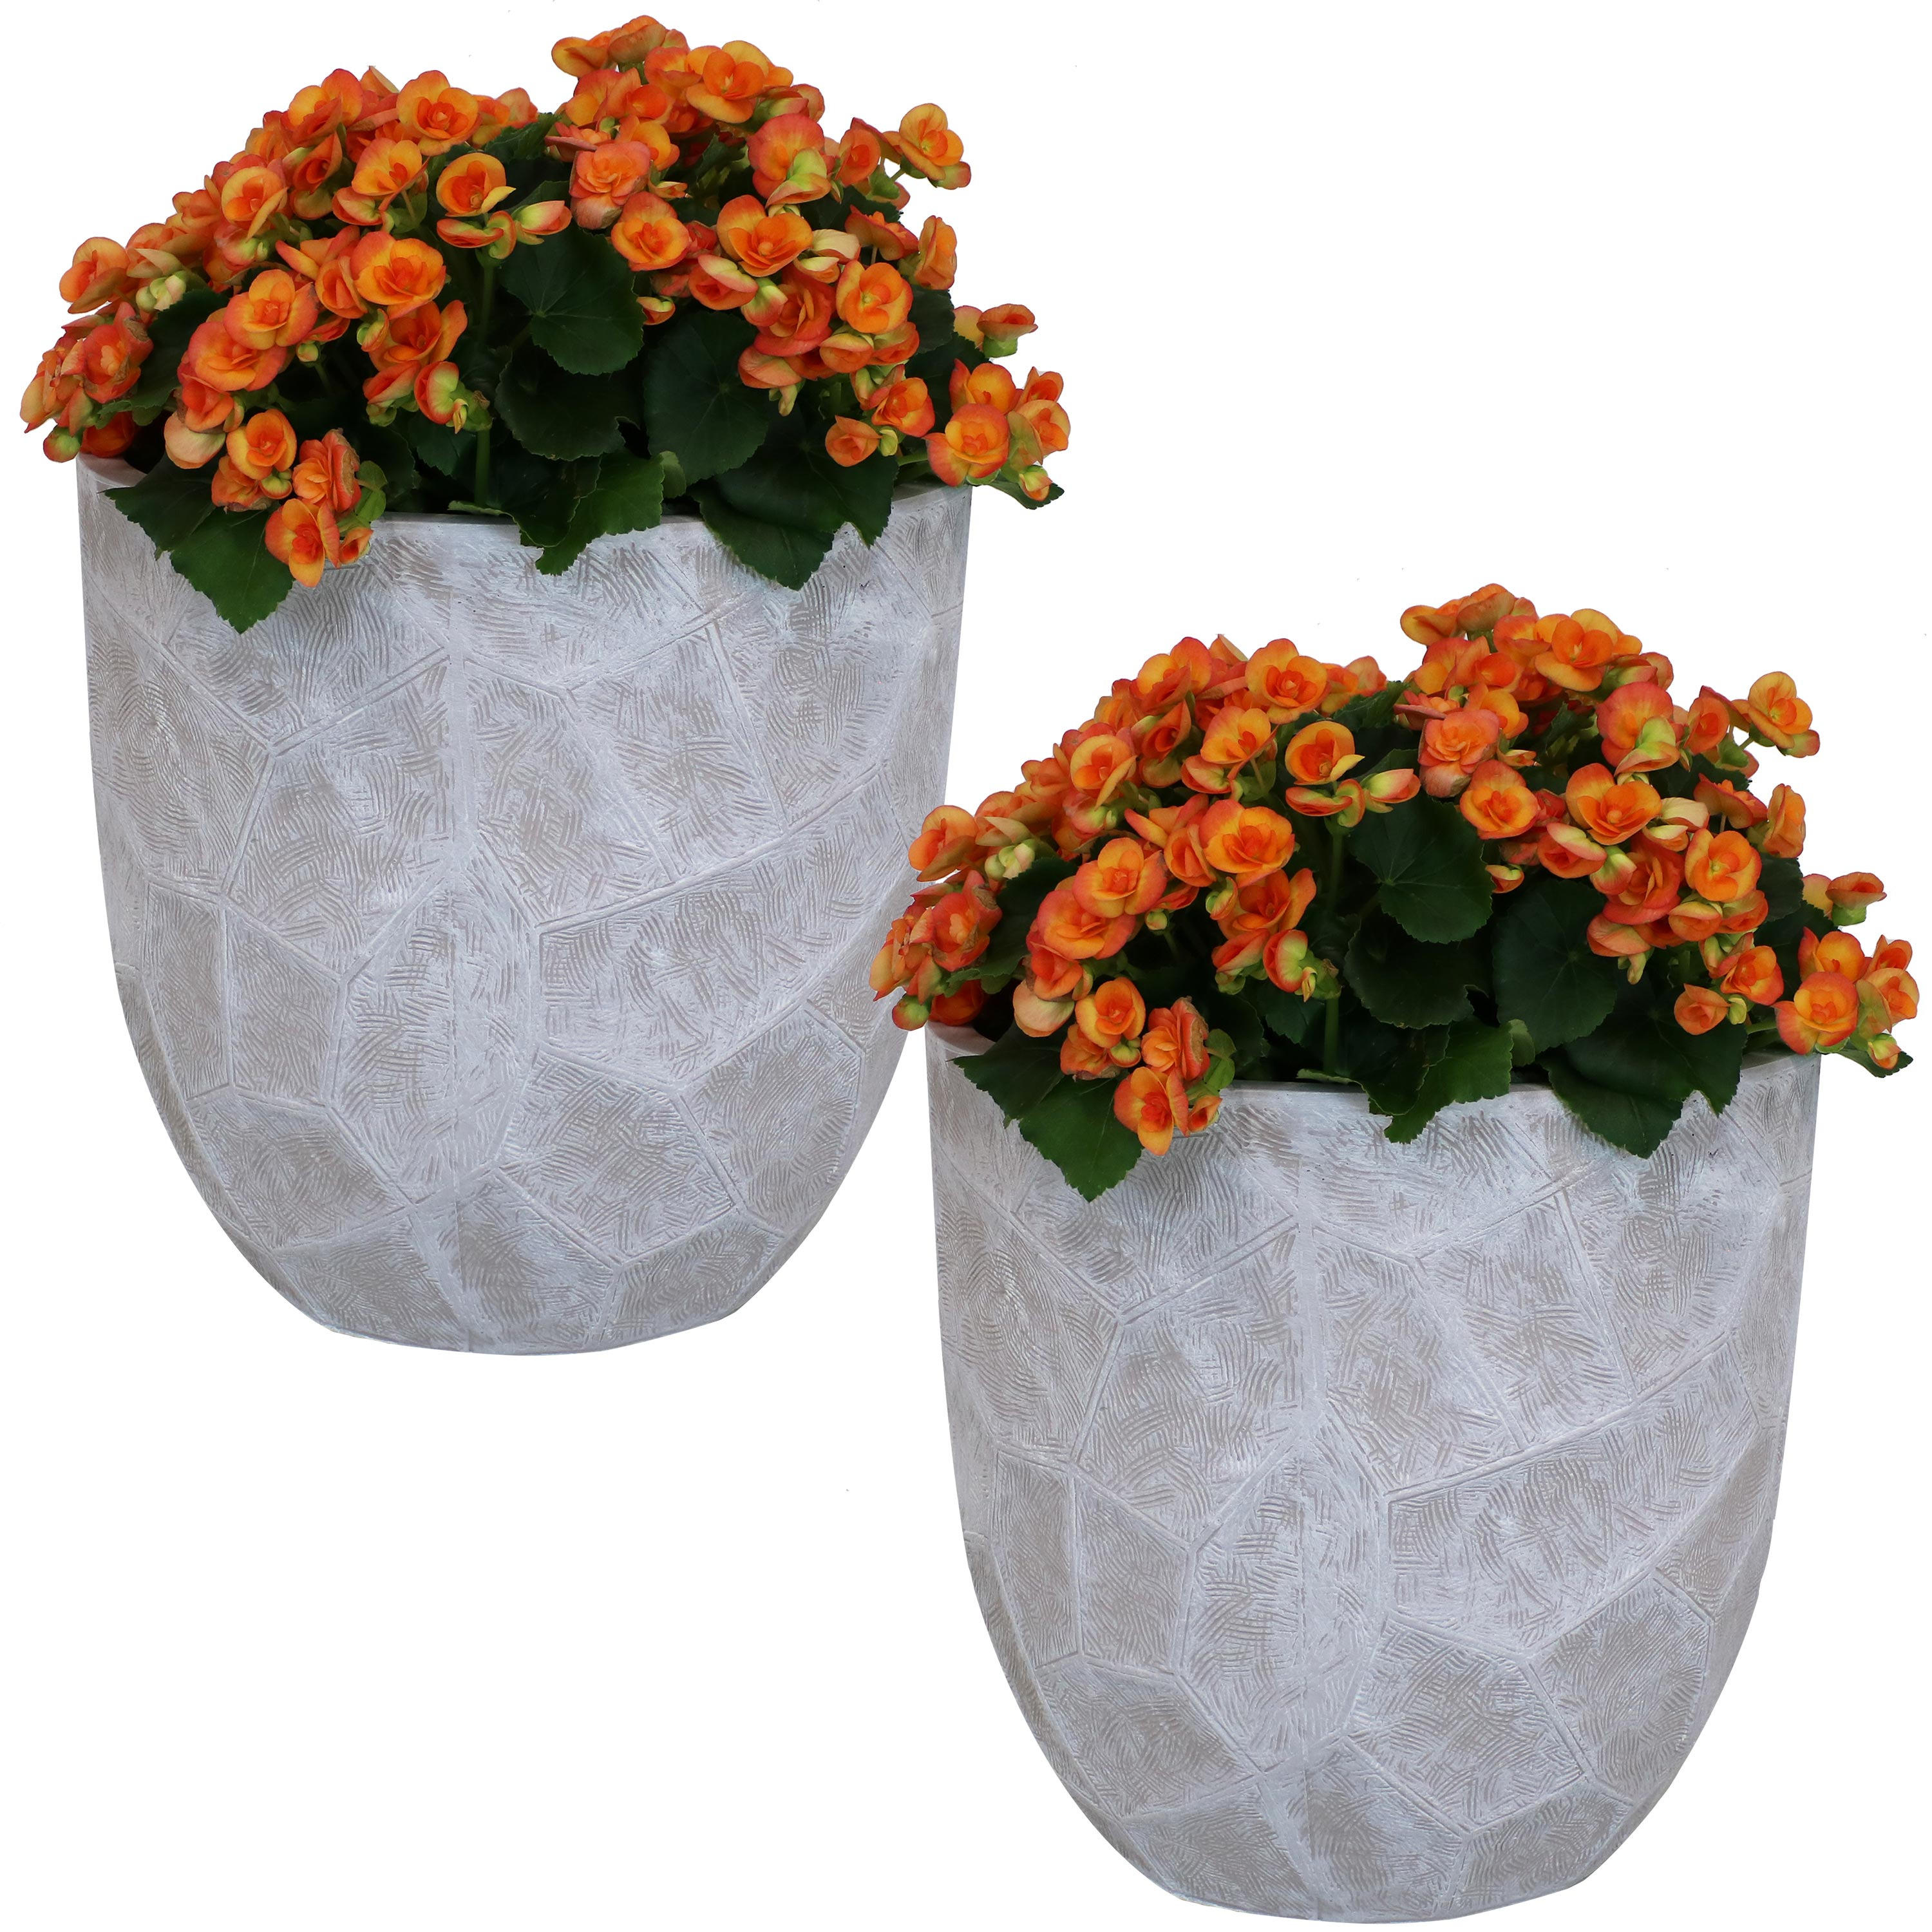 1249 Product Image